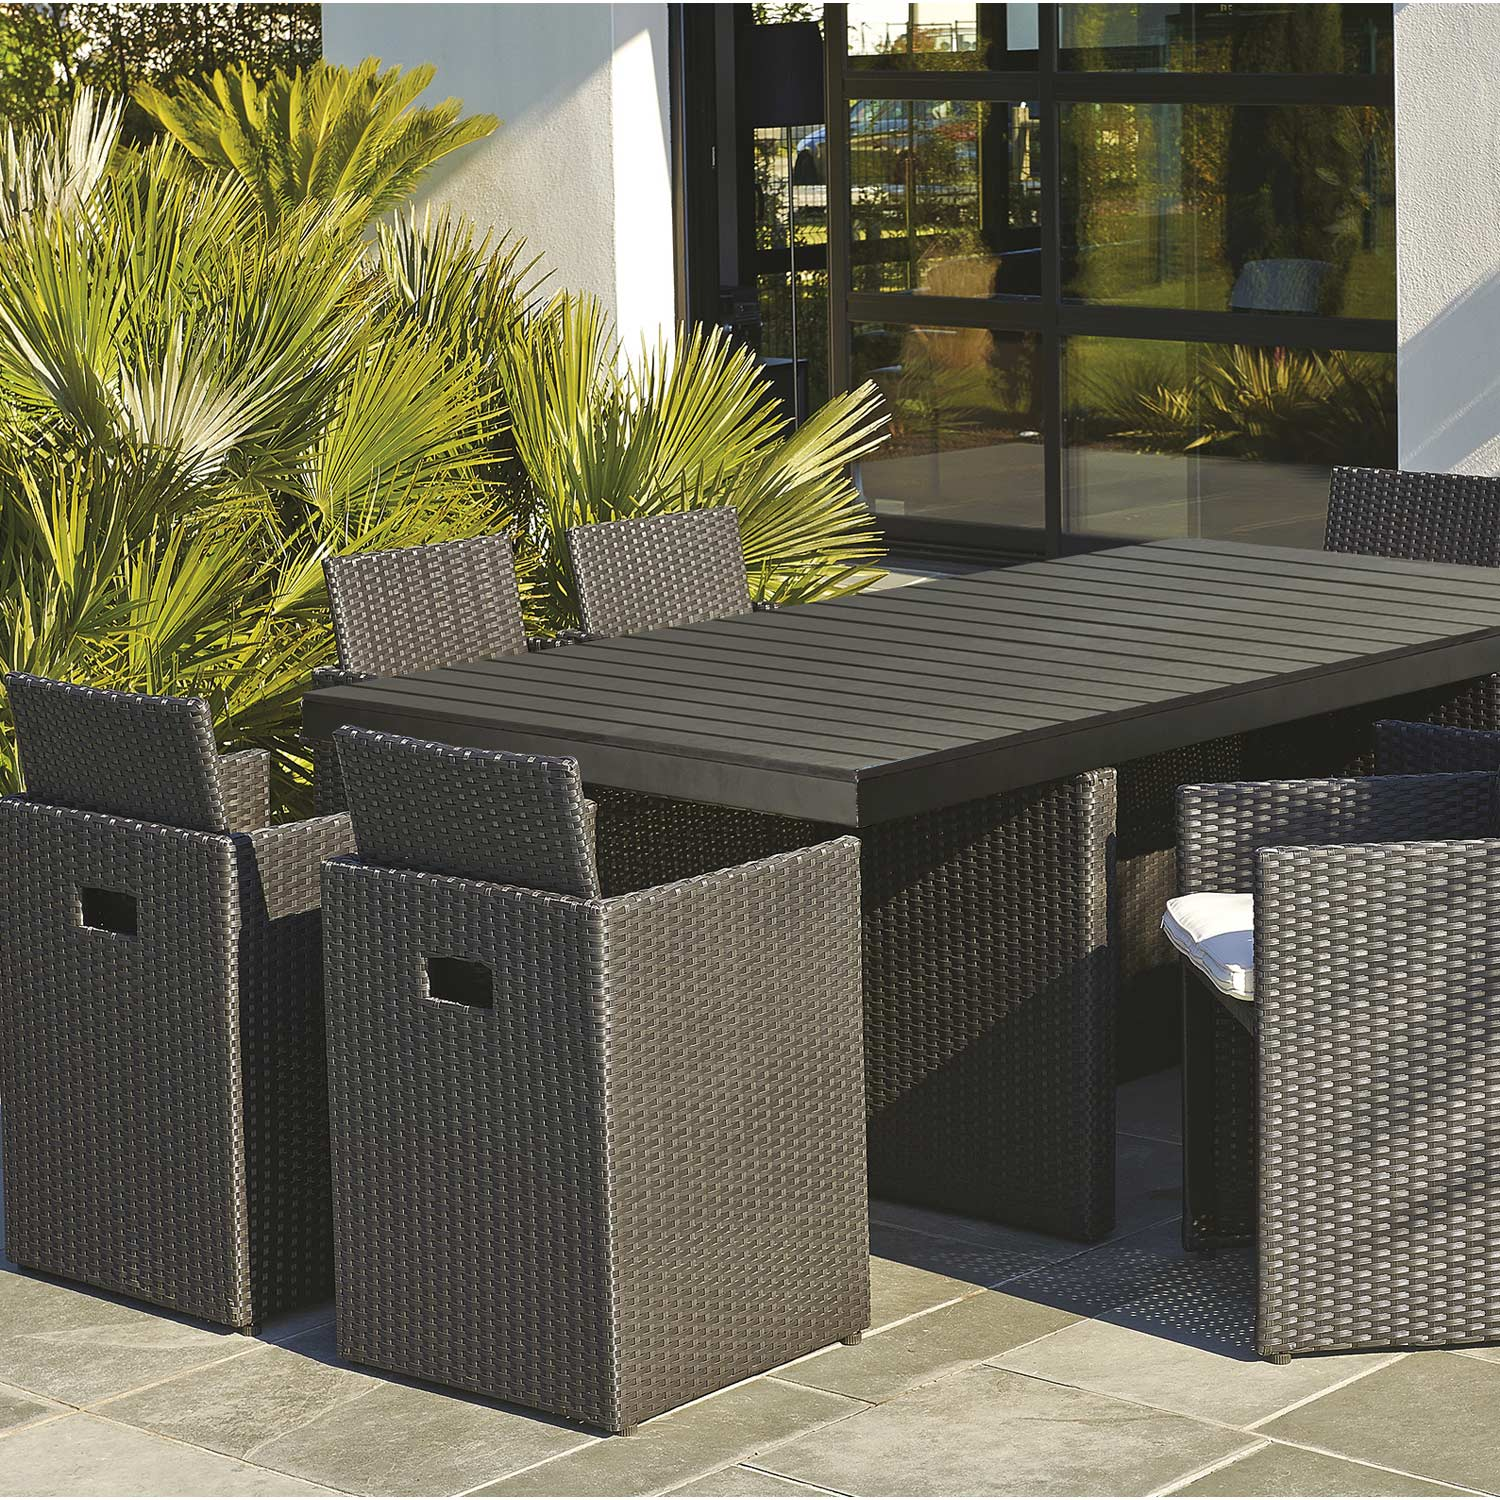 Salon de jardin encastrable r sine tress e noir 1 table for Salon de jardin en resine tressee solde